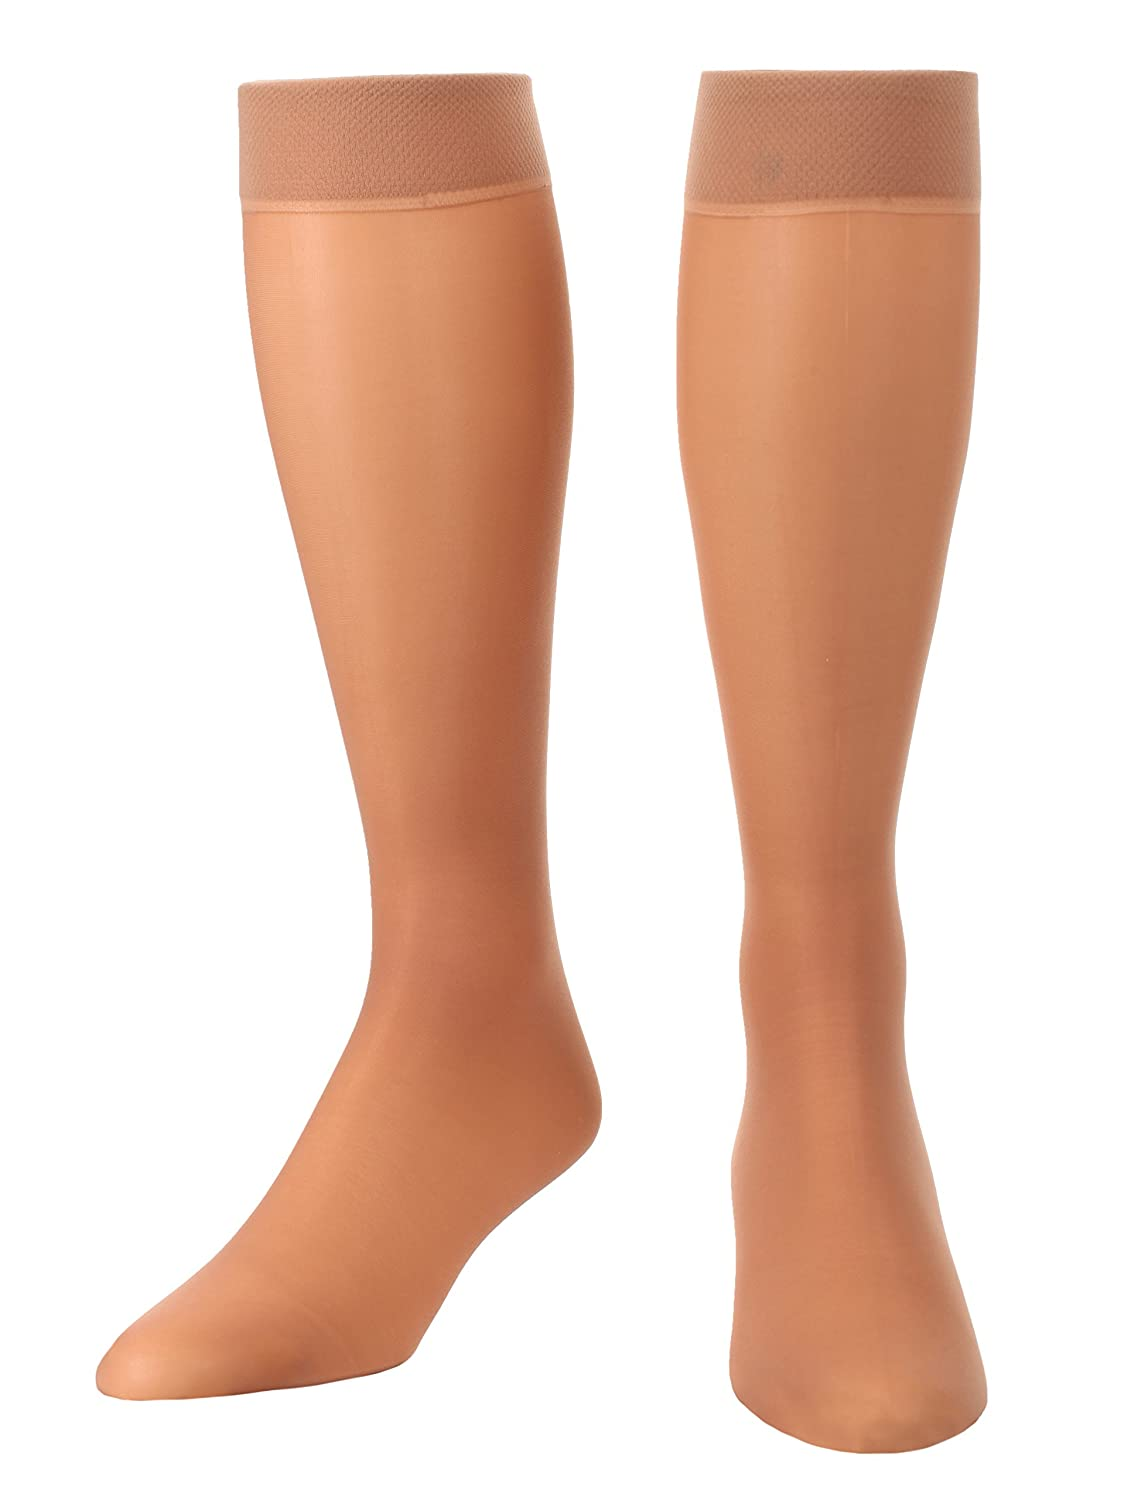 Sheer Light Support Knee Hi's graduated compression stockings 8-15mmHg 1 Pair- Absolute Support - Nude Large - Made in the USA by Absolute Support   B01E5V7FFW